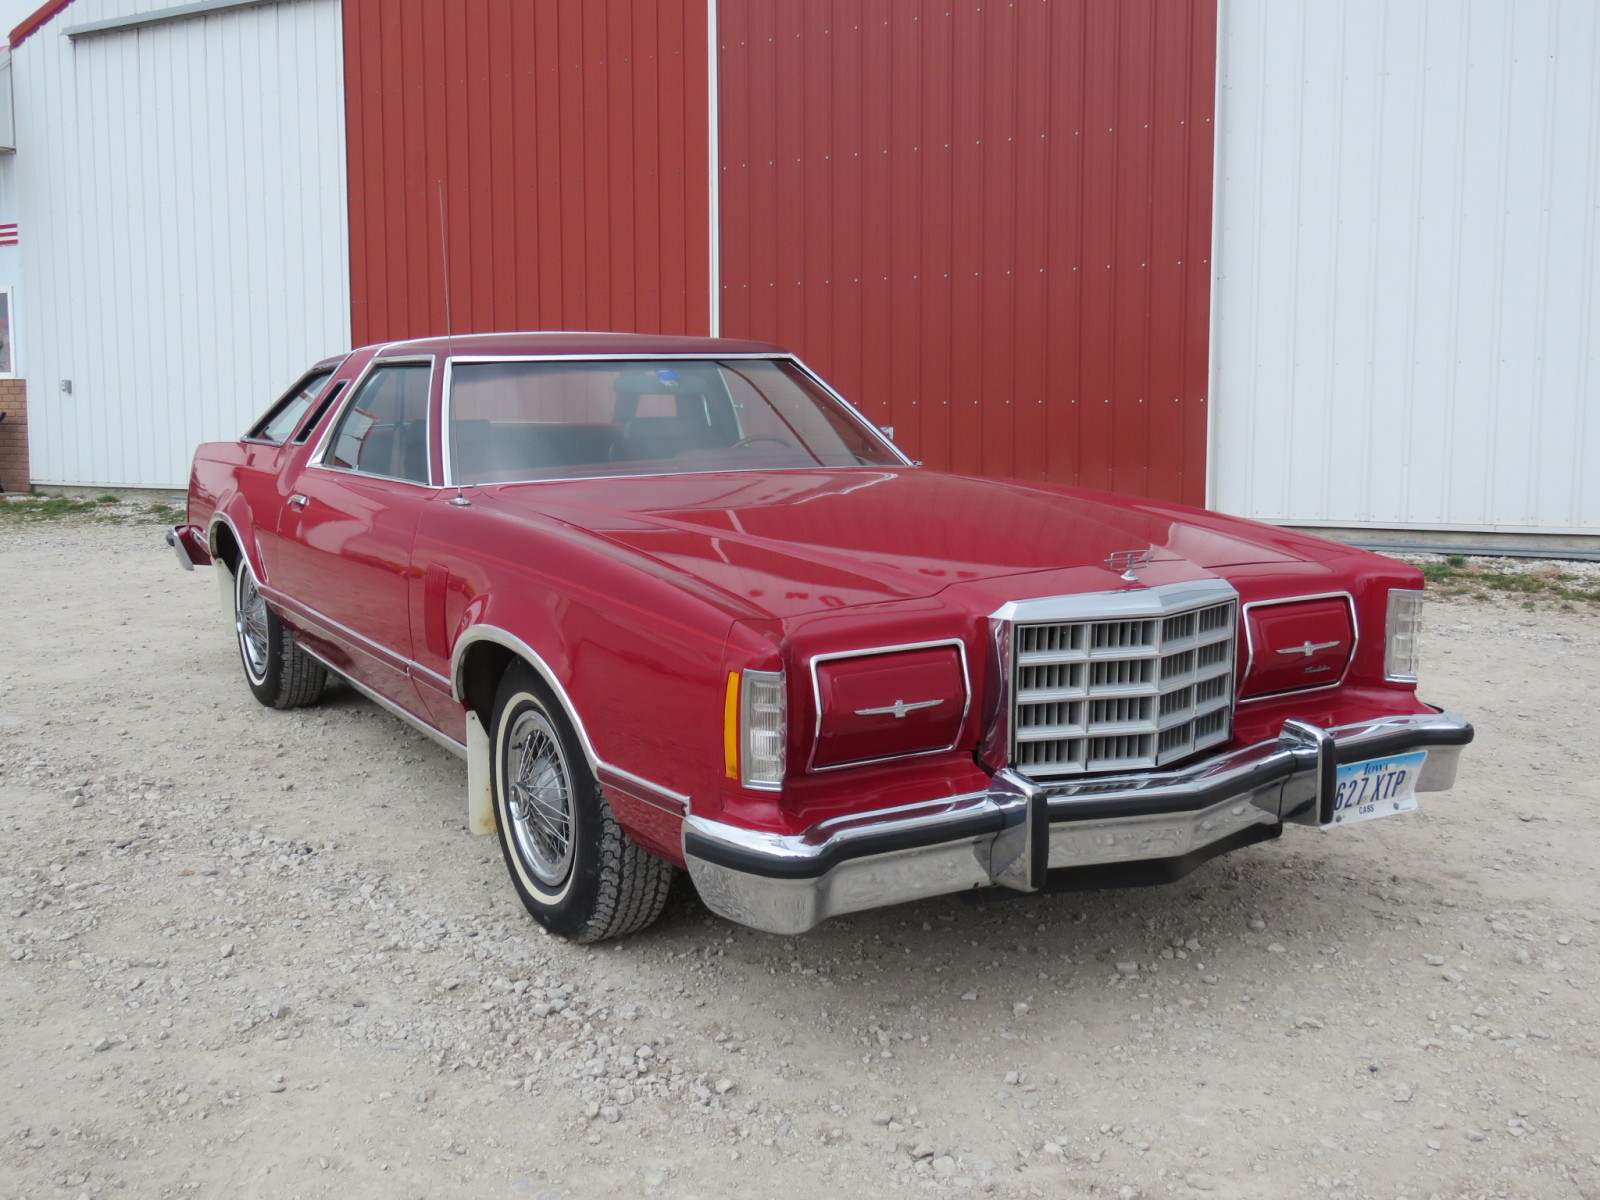 1979 Ford Thunderbird Coupe - Image 1